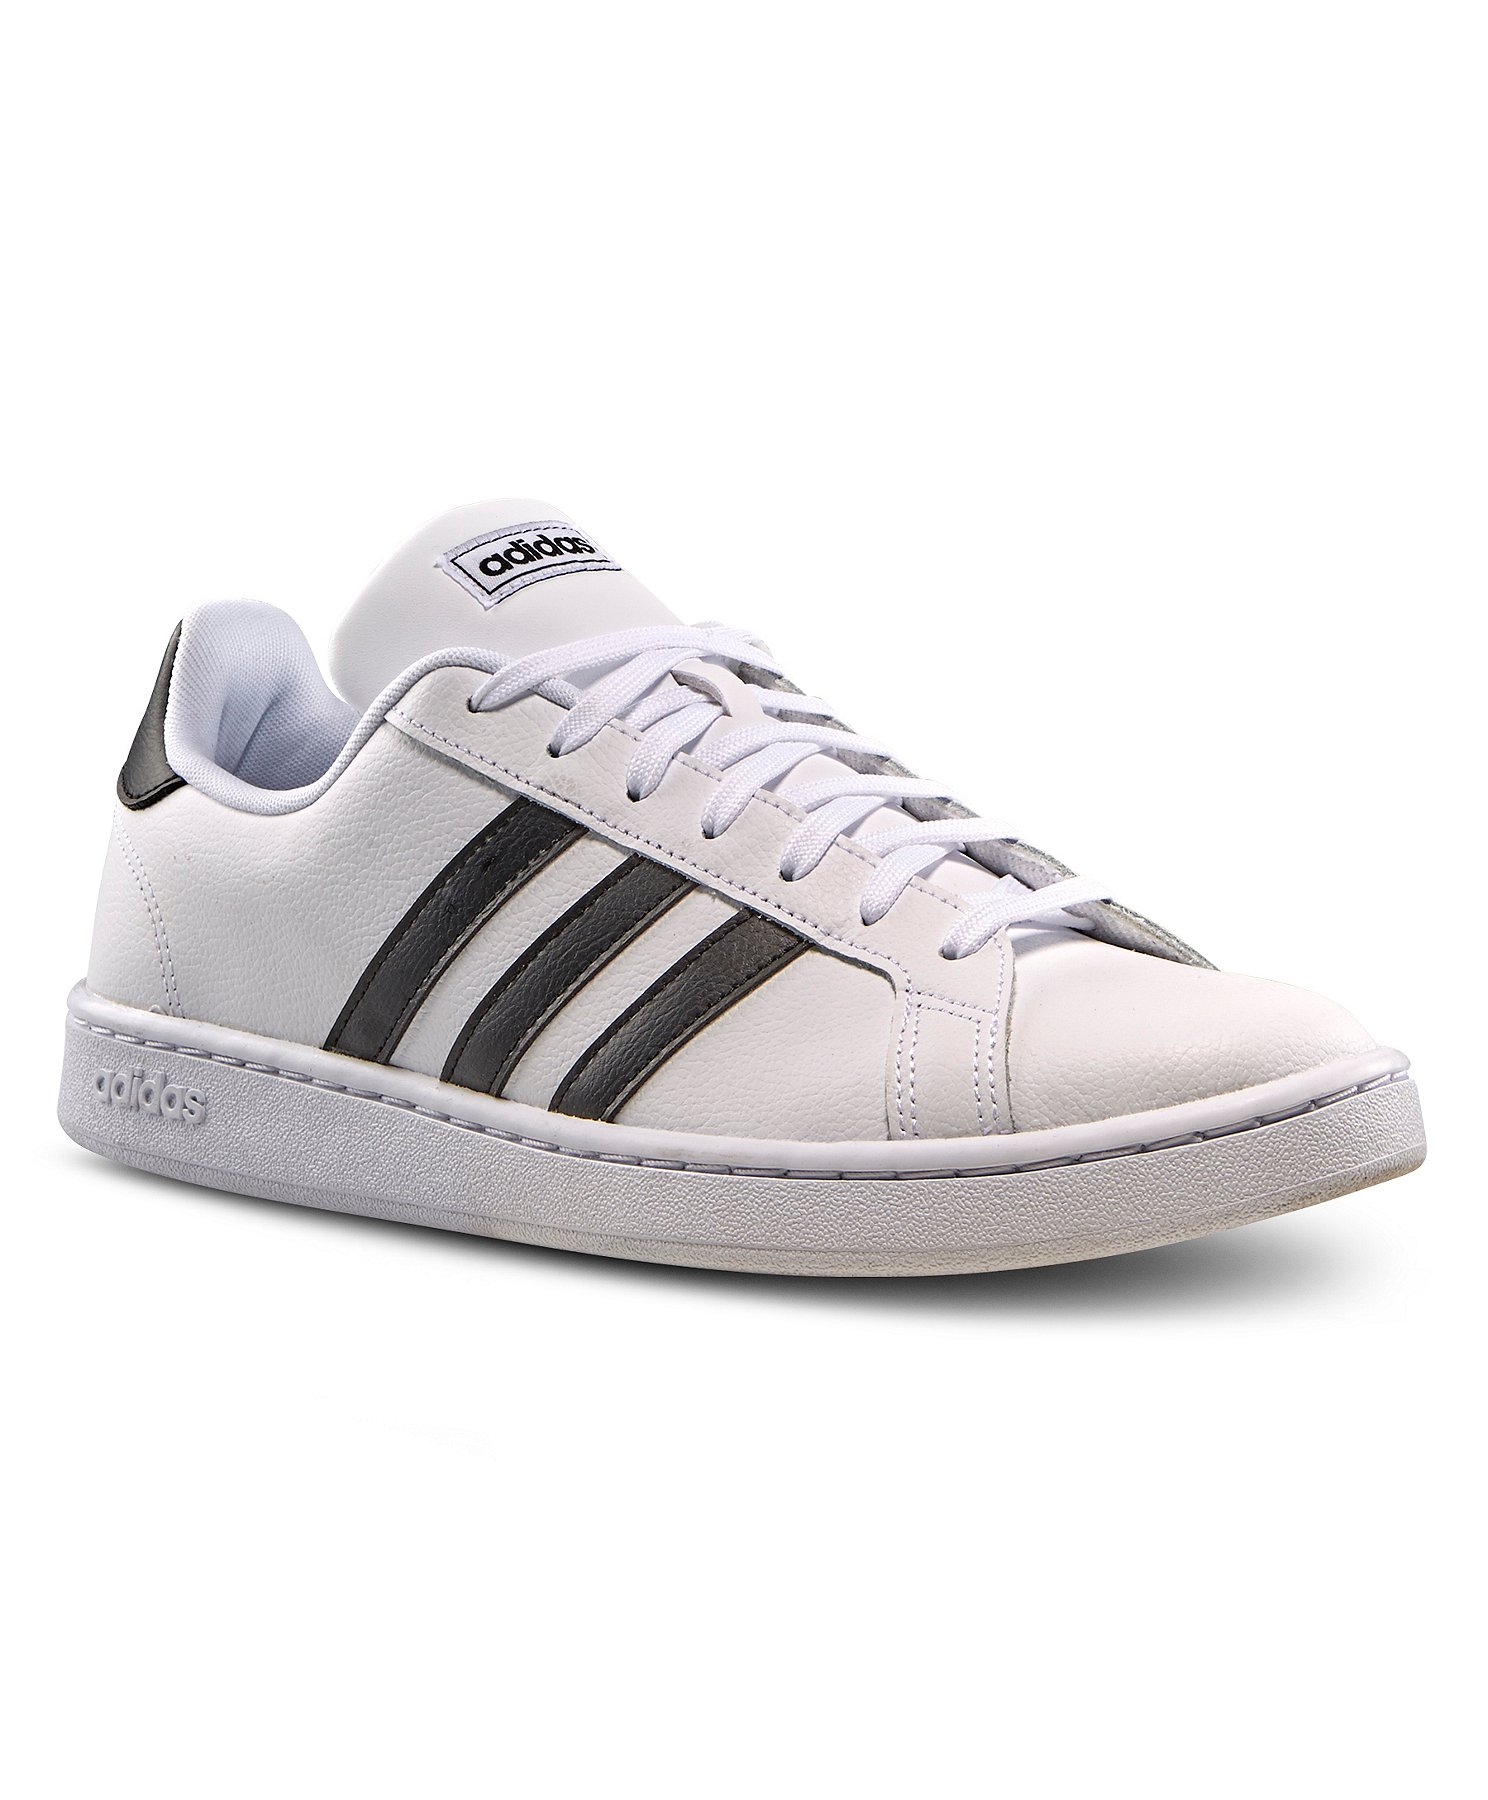 chaussures adidas grand court